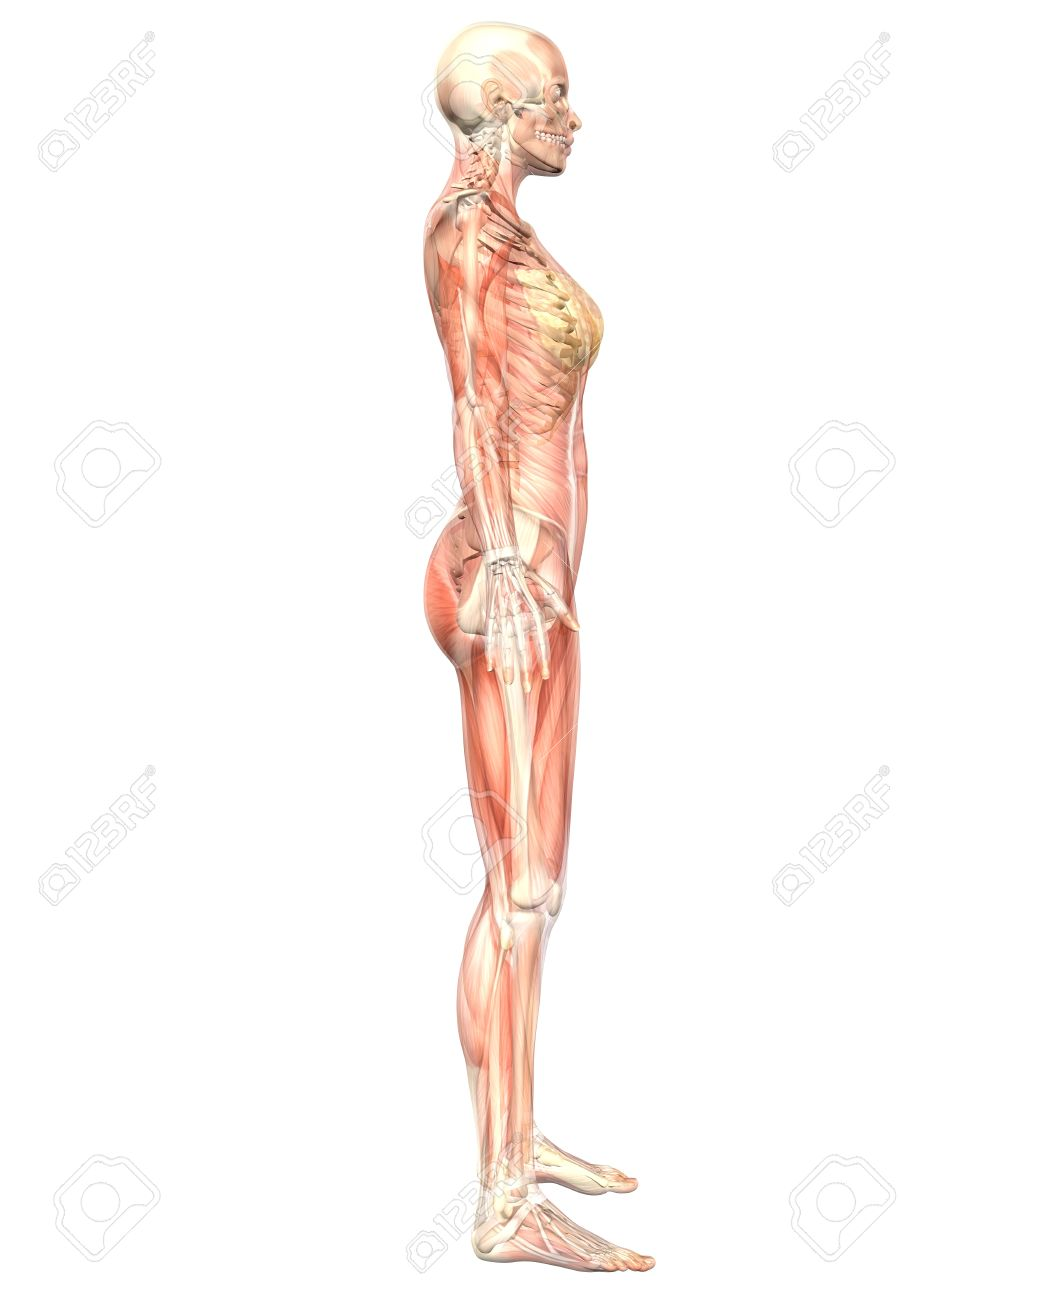 A illustration of the side view of the female muscular anatomy, semi transparent showing the skeletal anatomy. Very educational and detailed. - 10613638